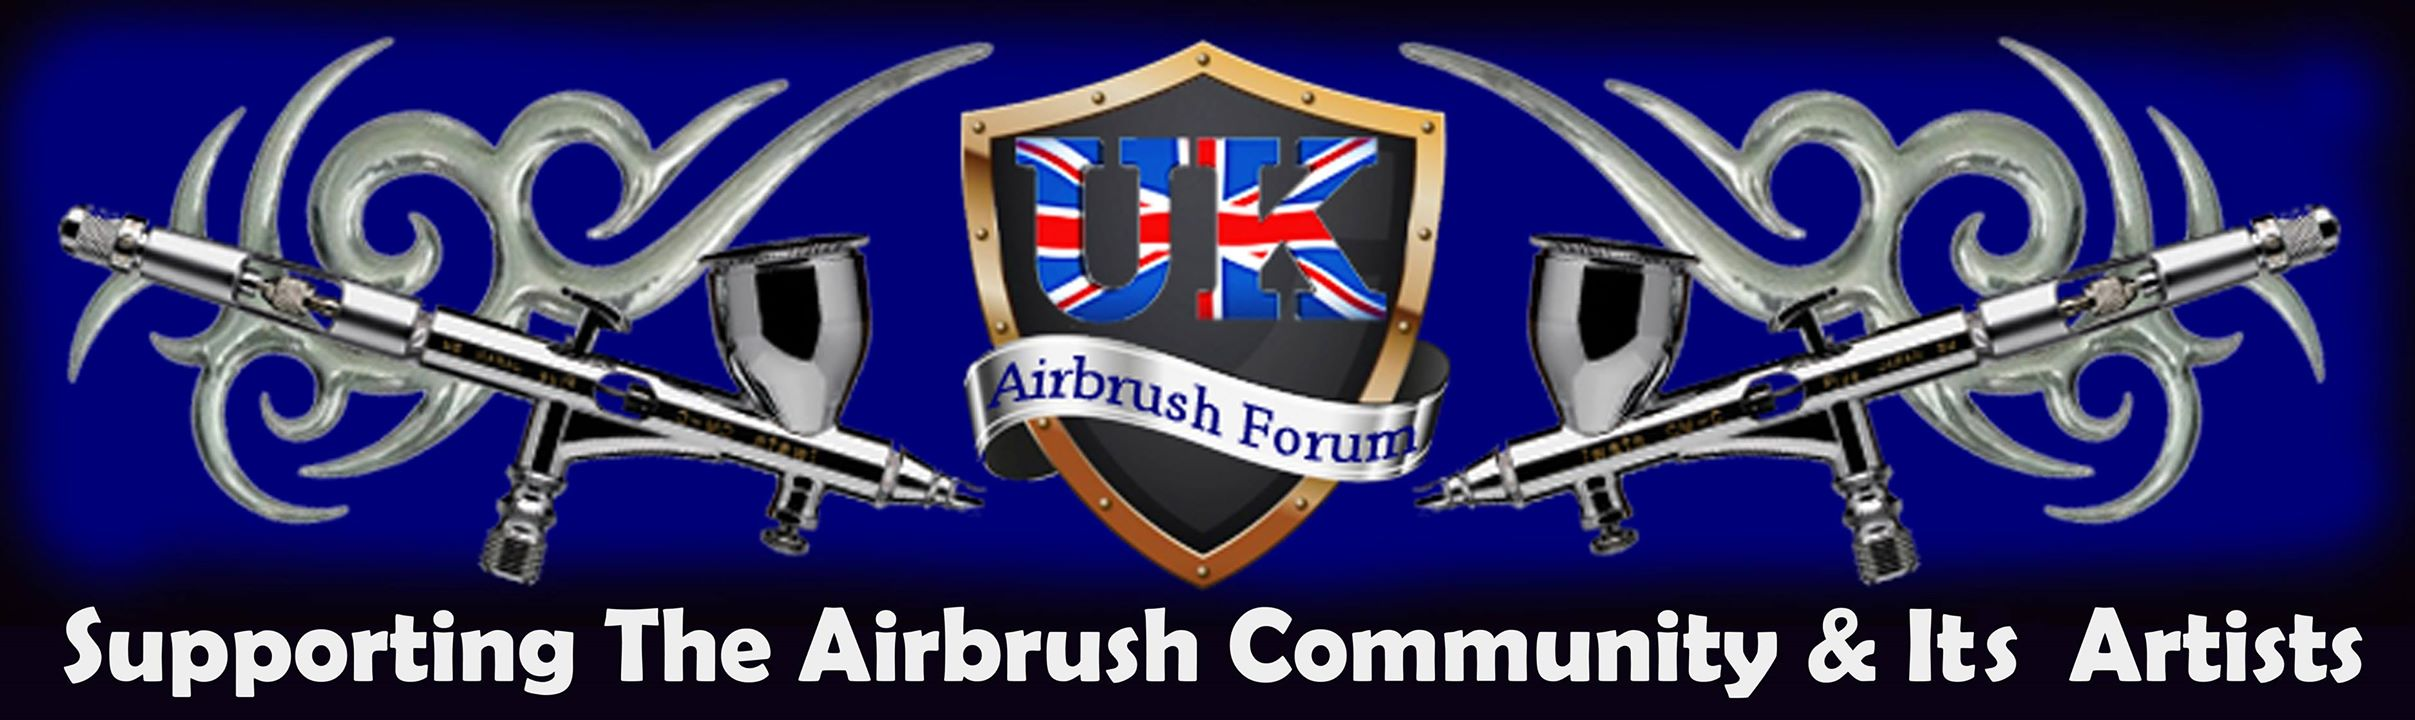 UK Airbrush Forum